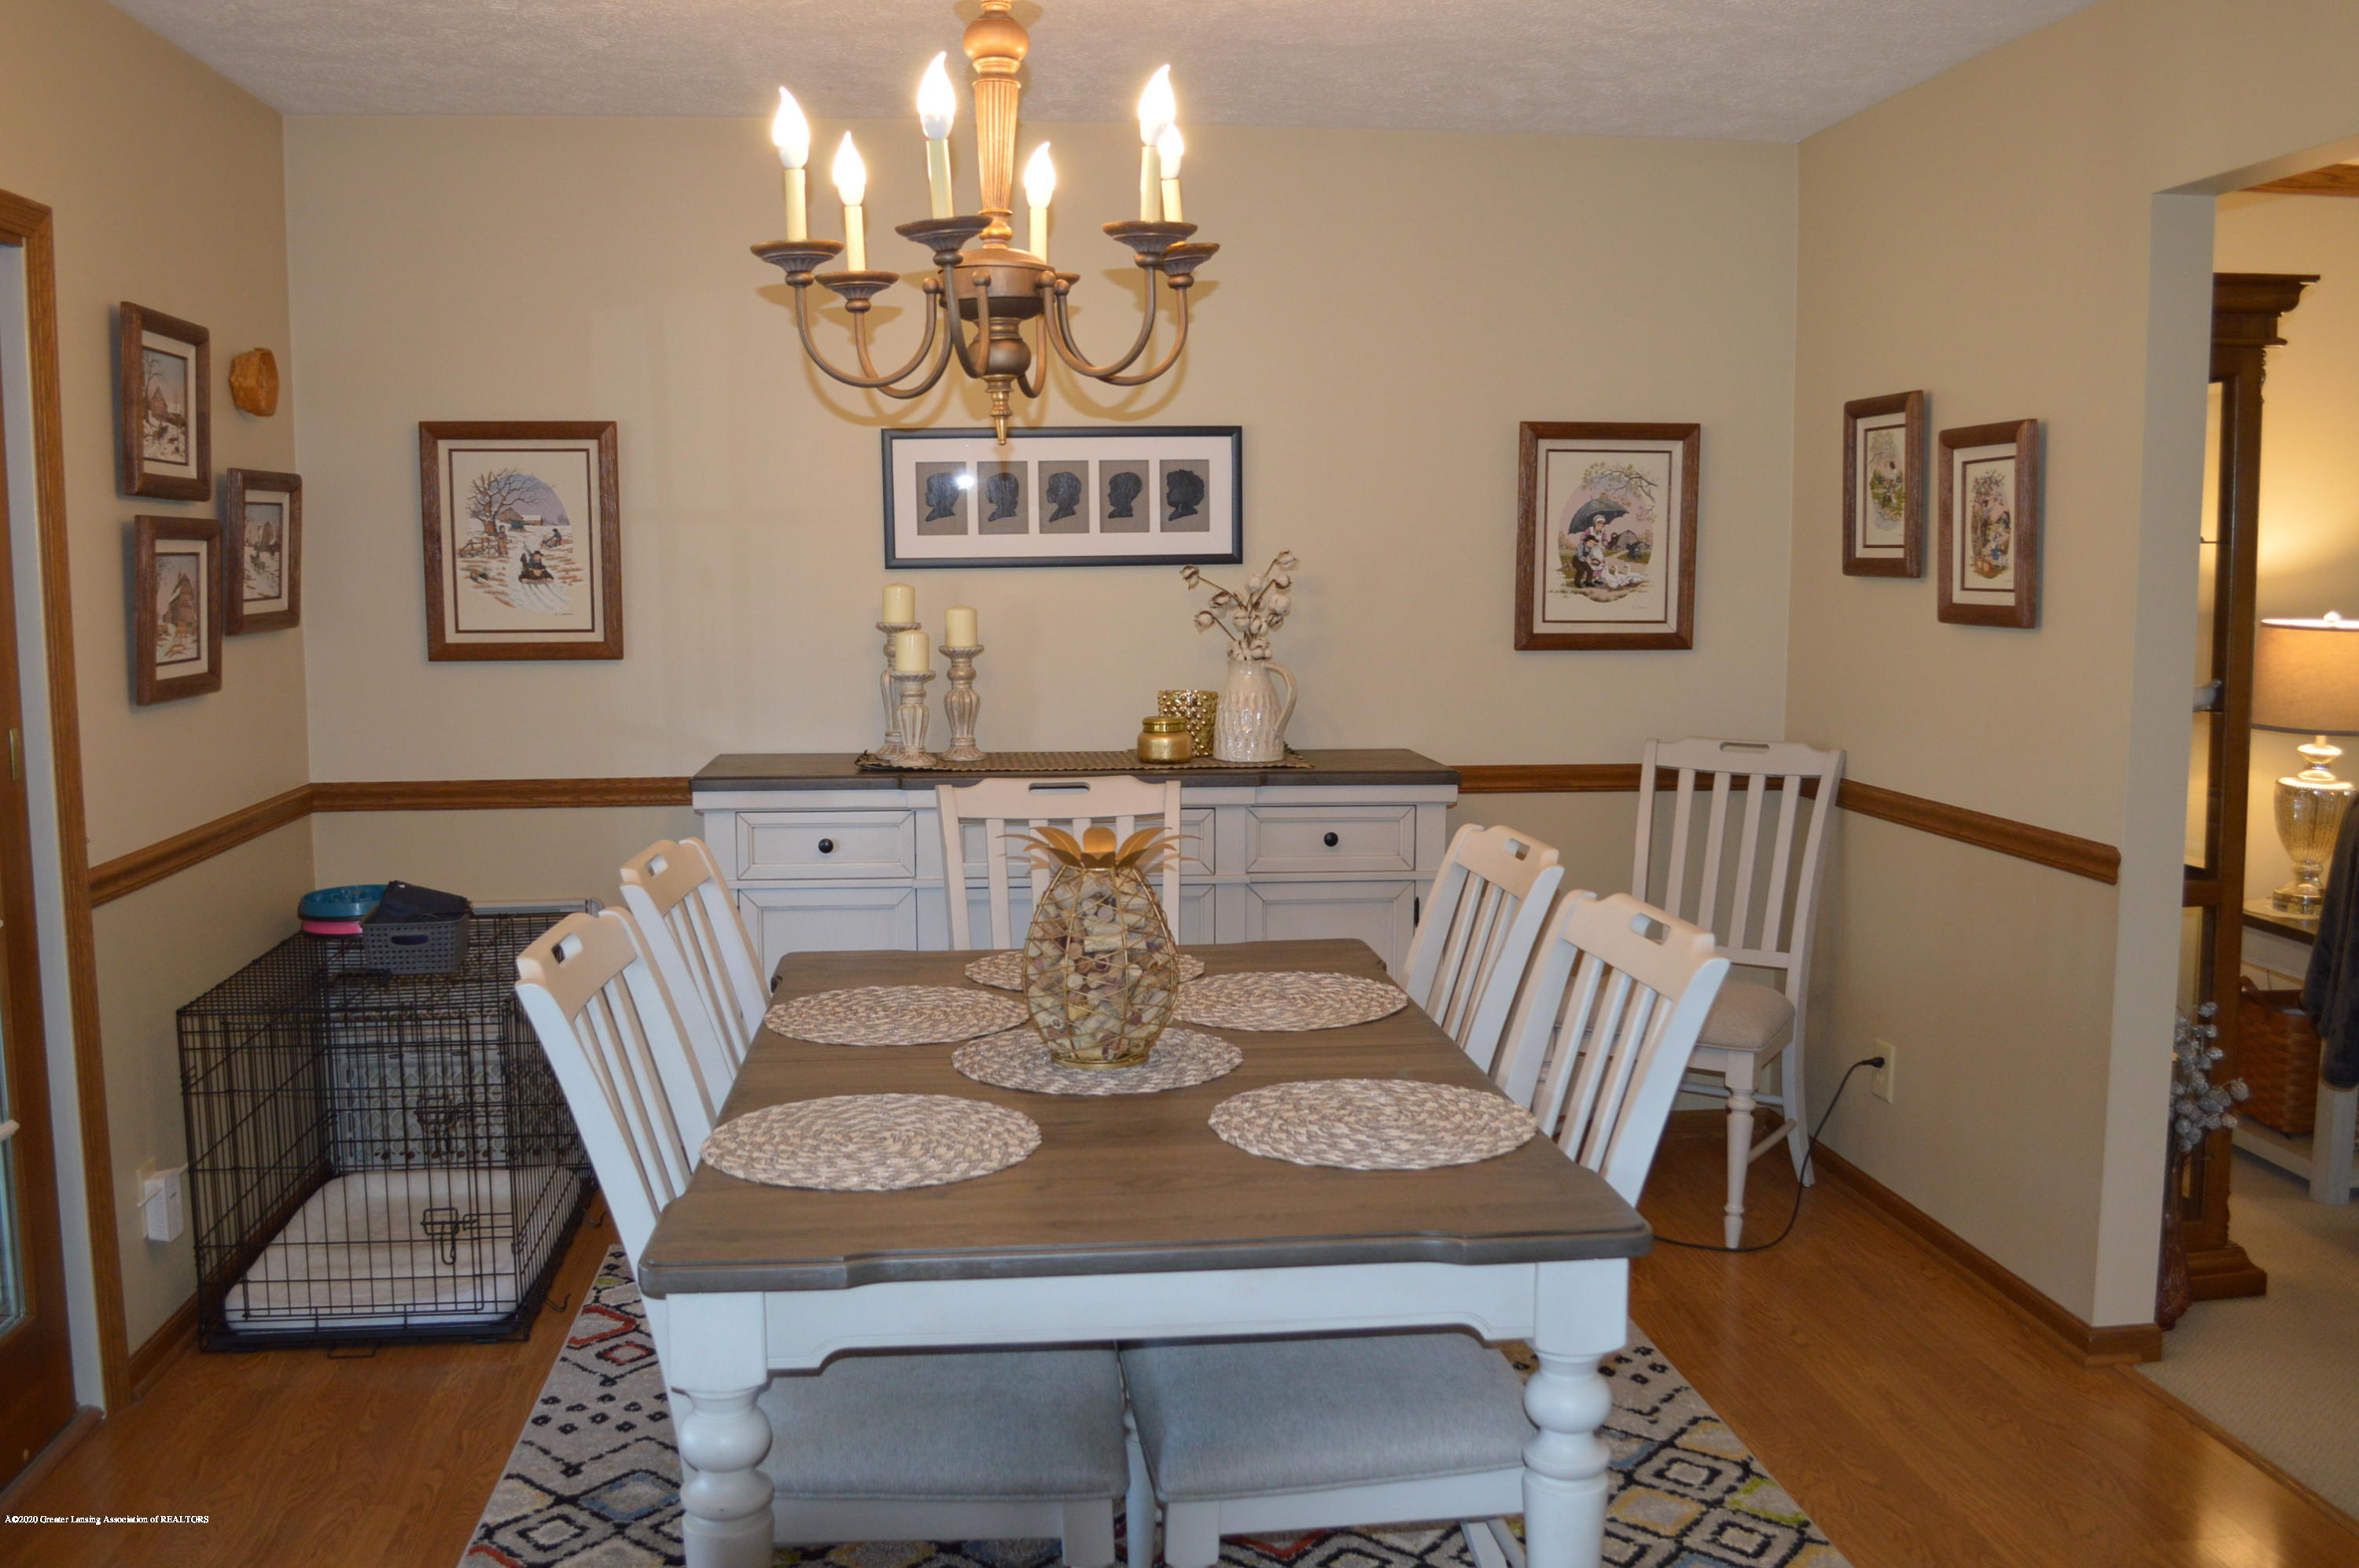 7021 E Howe Rd - Dining area - 12